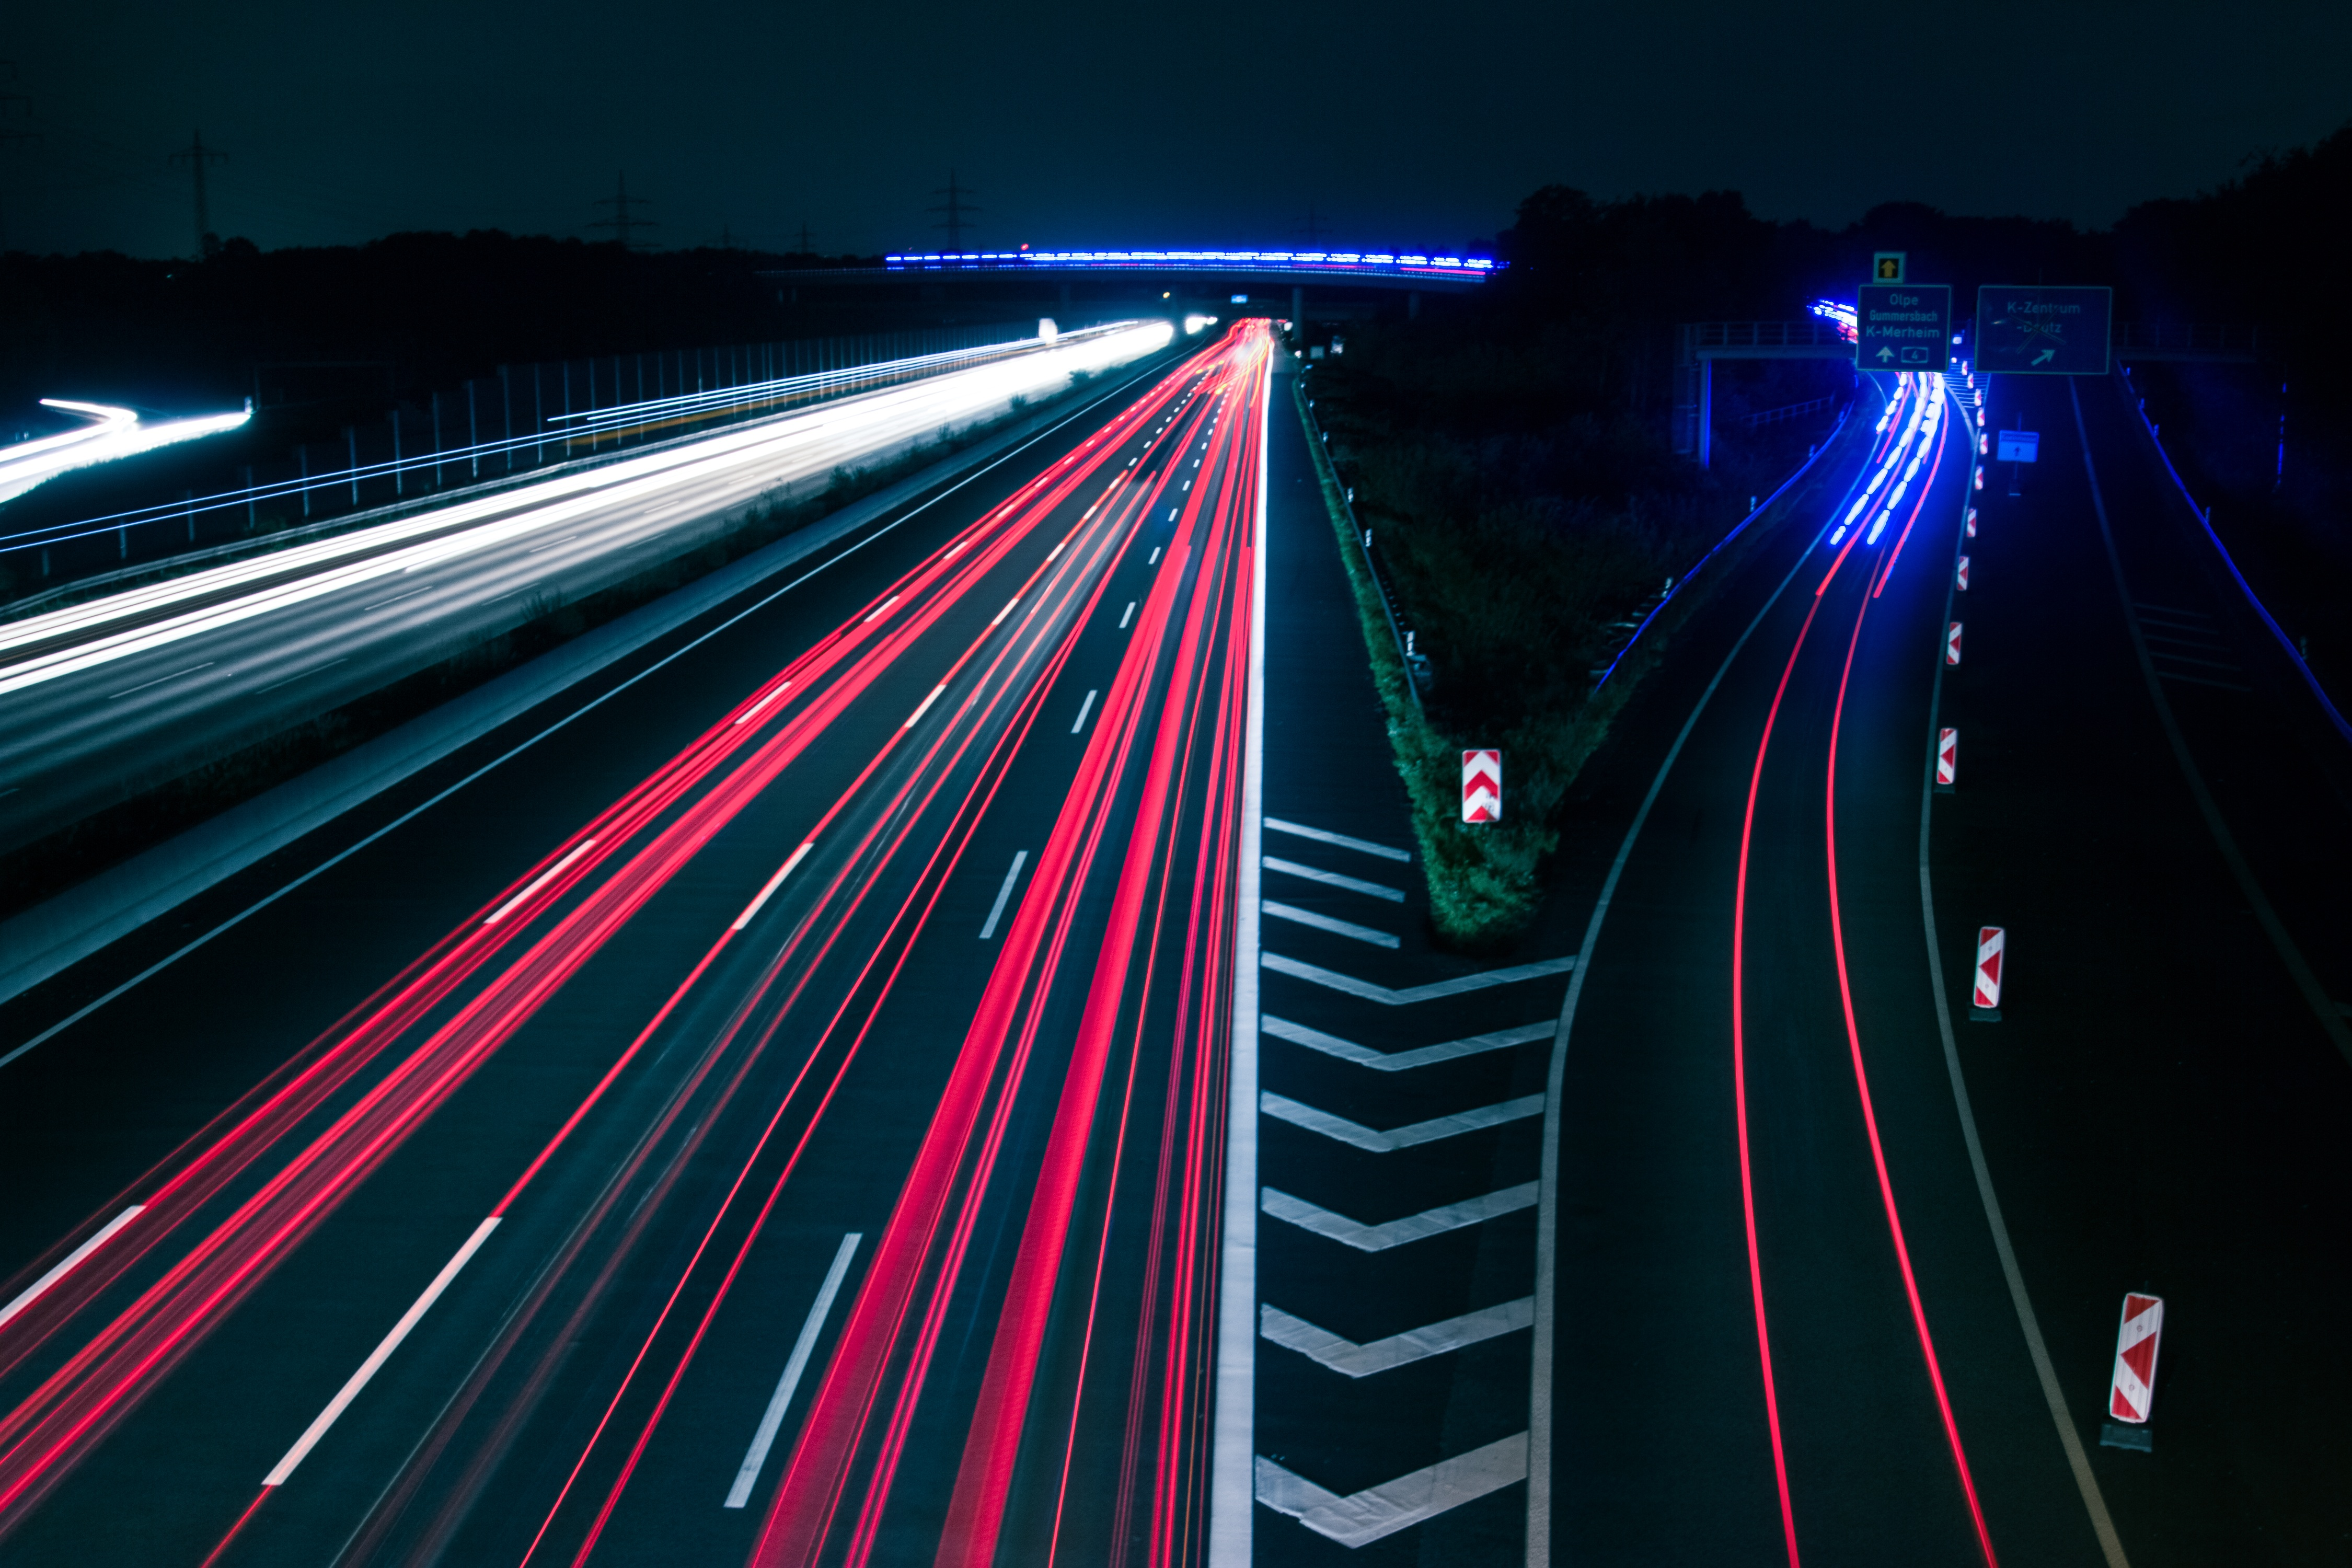 Light Trails on Road at Night · Free Stock Photo for Traffic Light On Road At Night  239wja